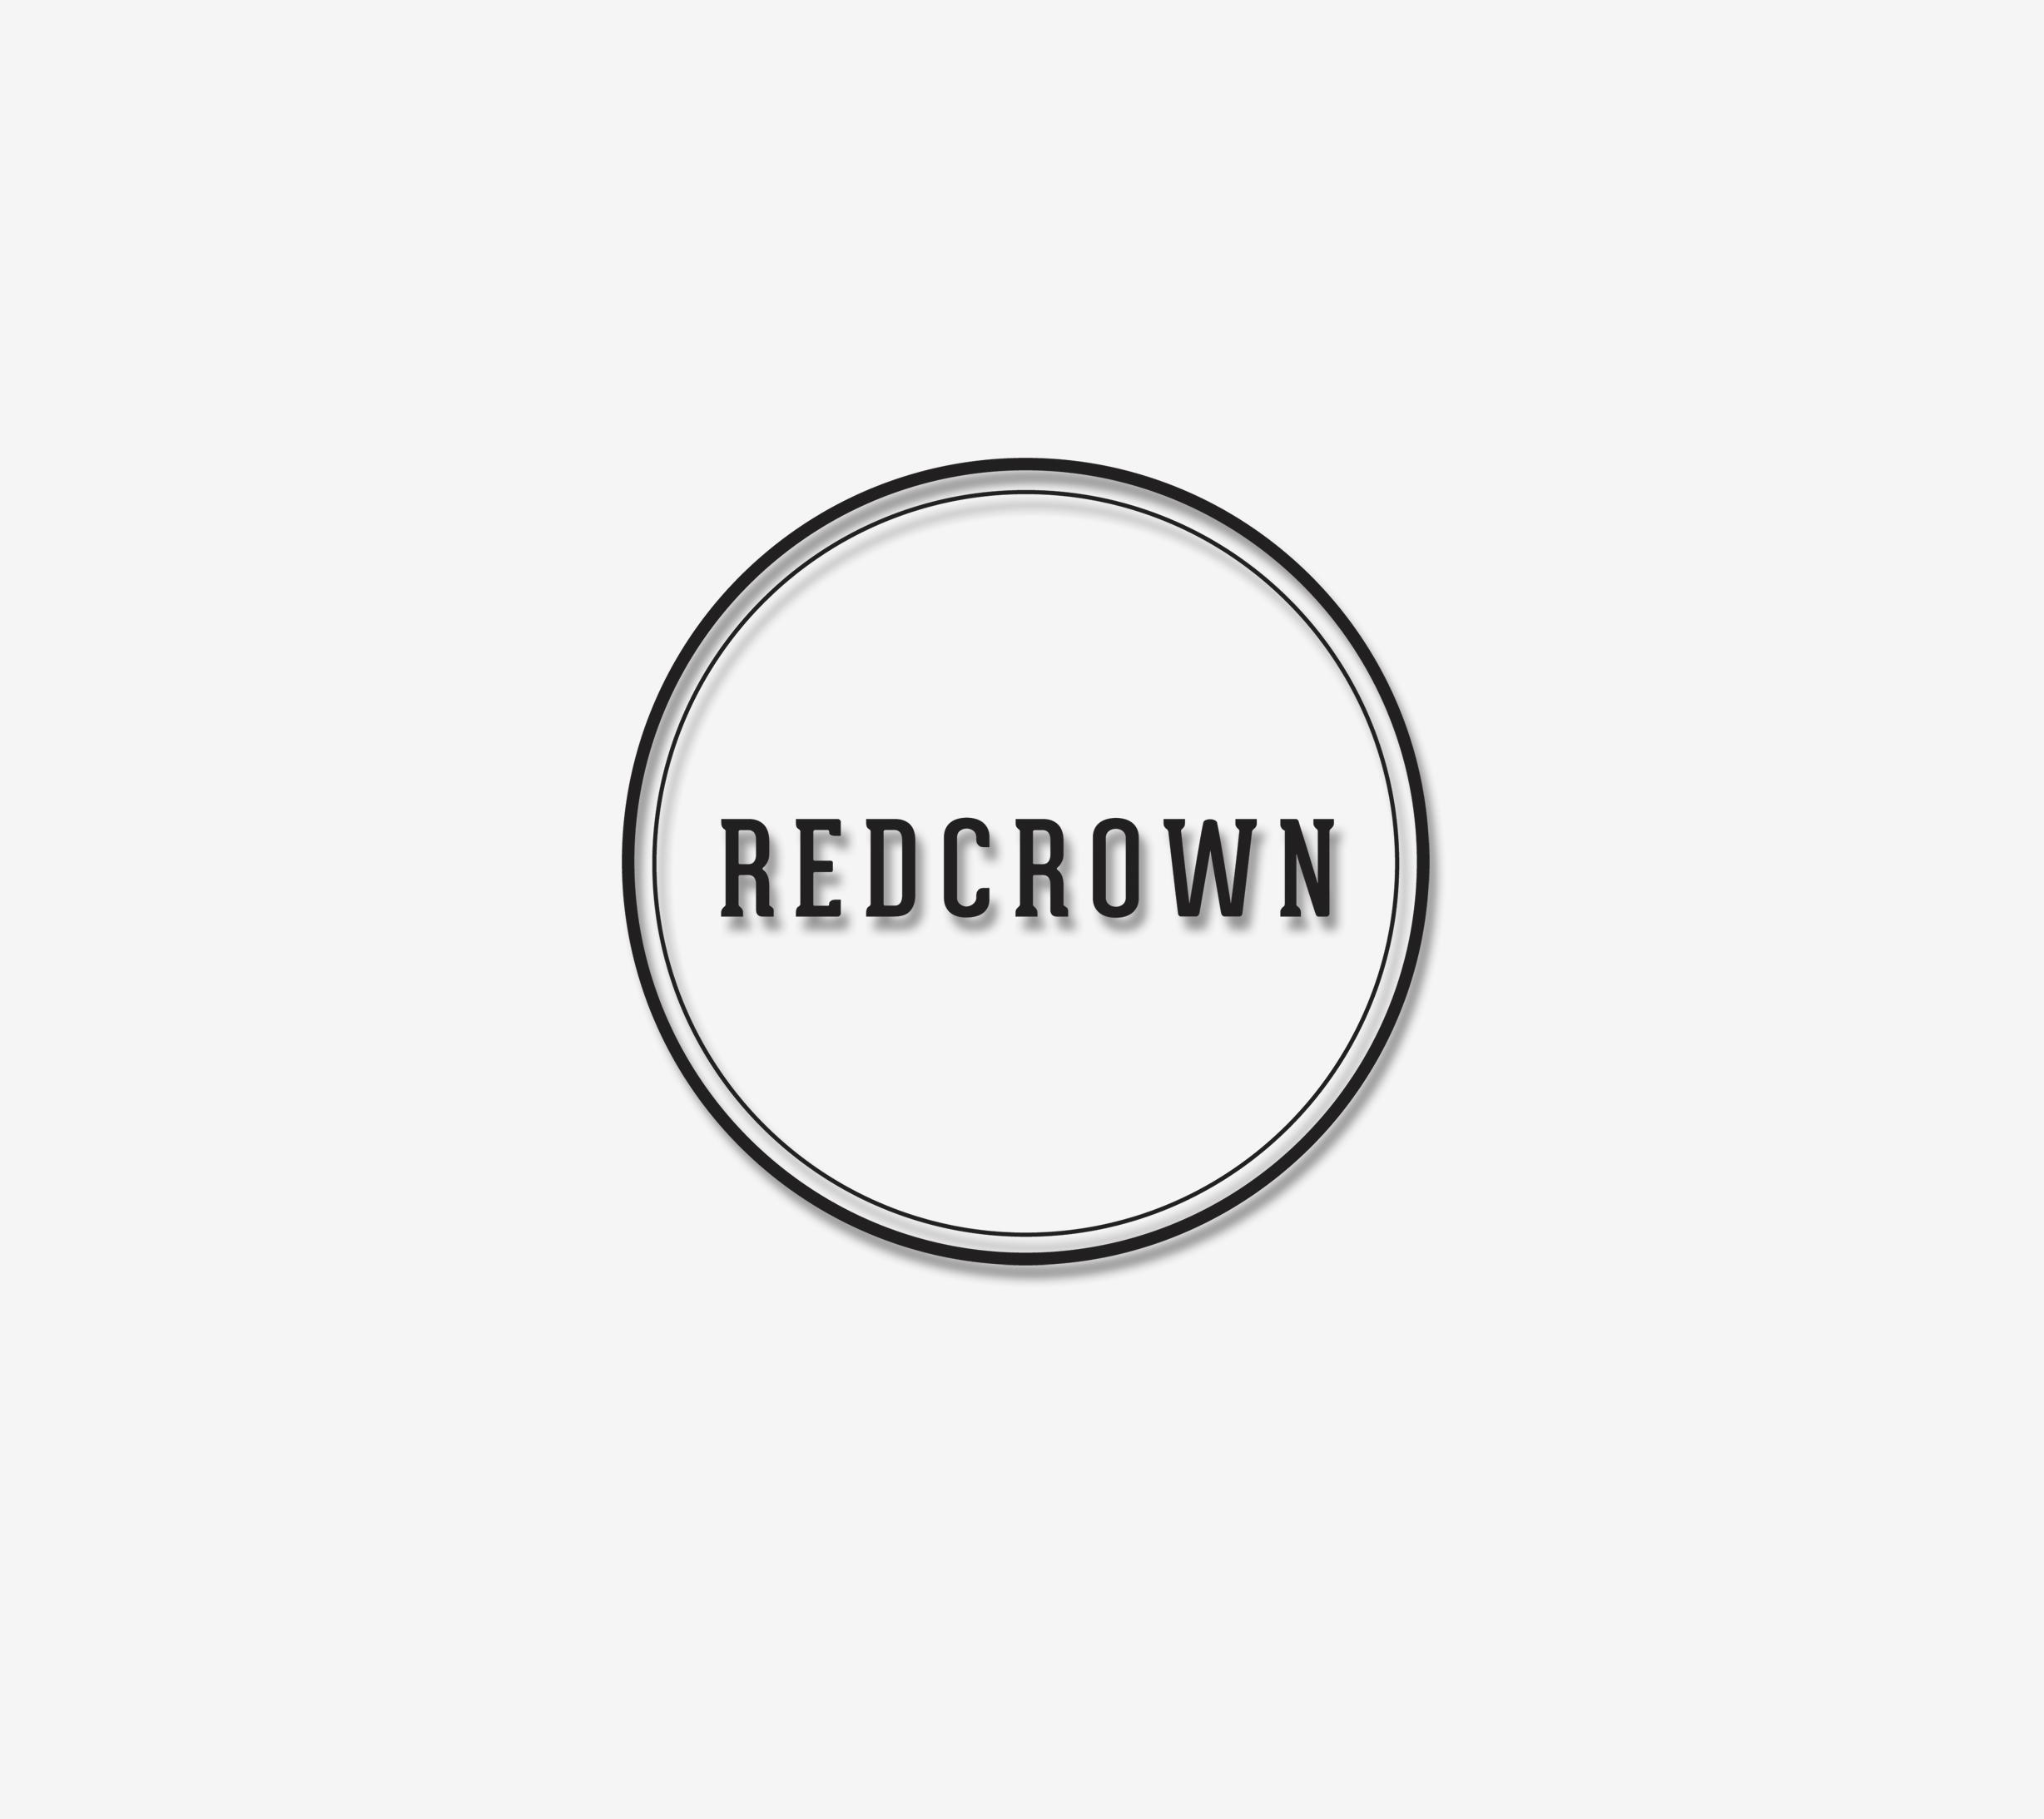 RedCrown -  Canada - image 1 - student project